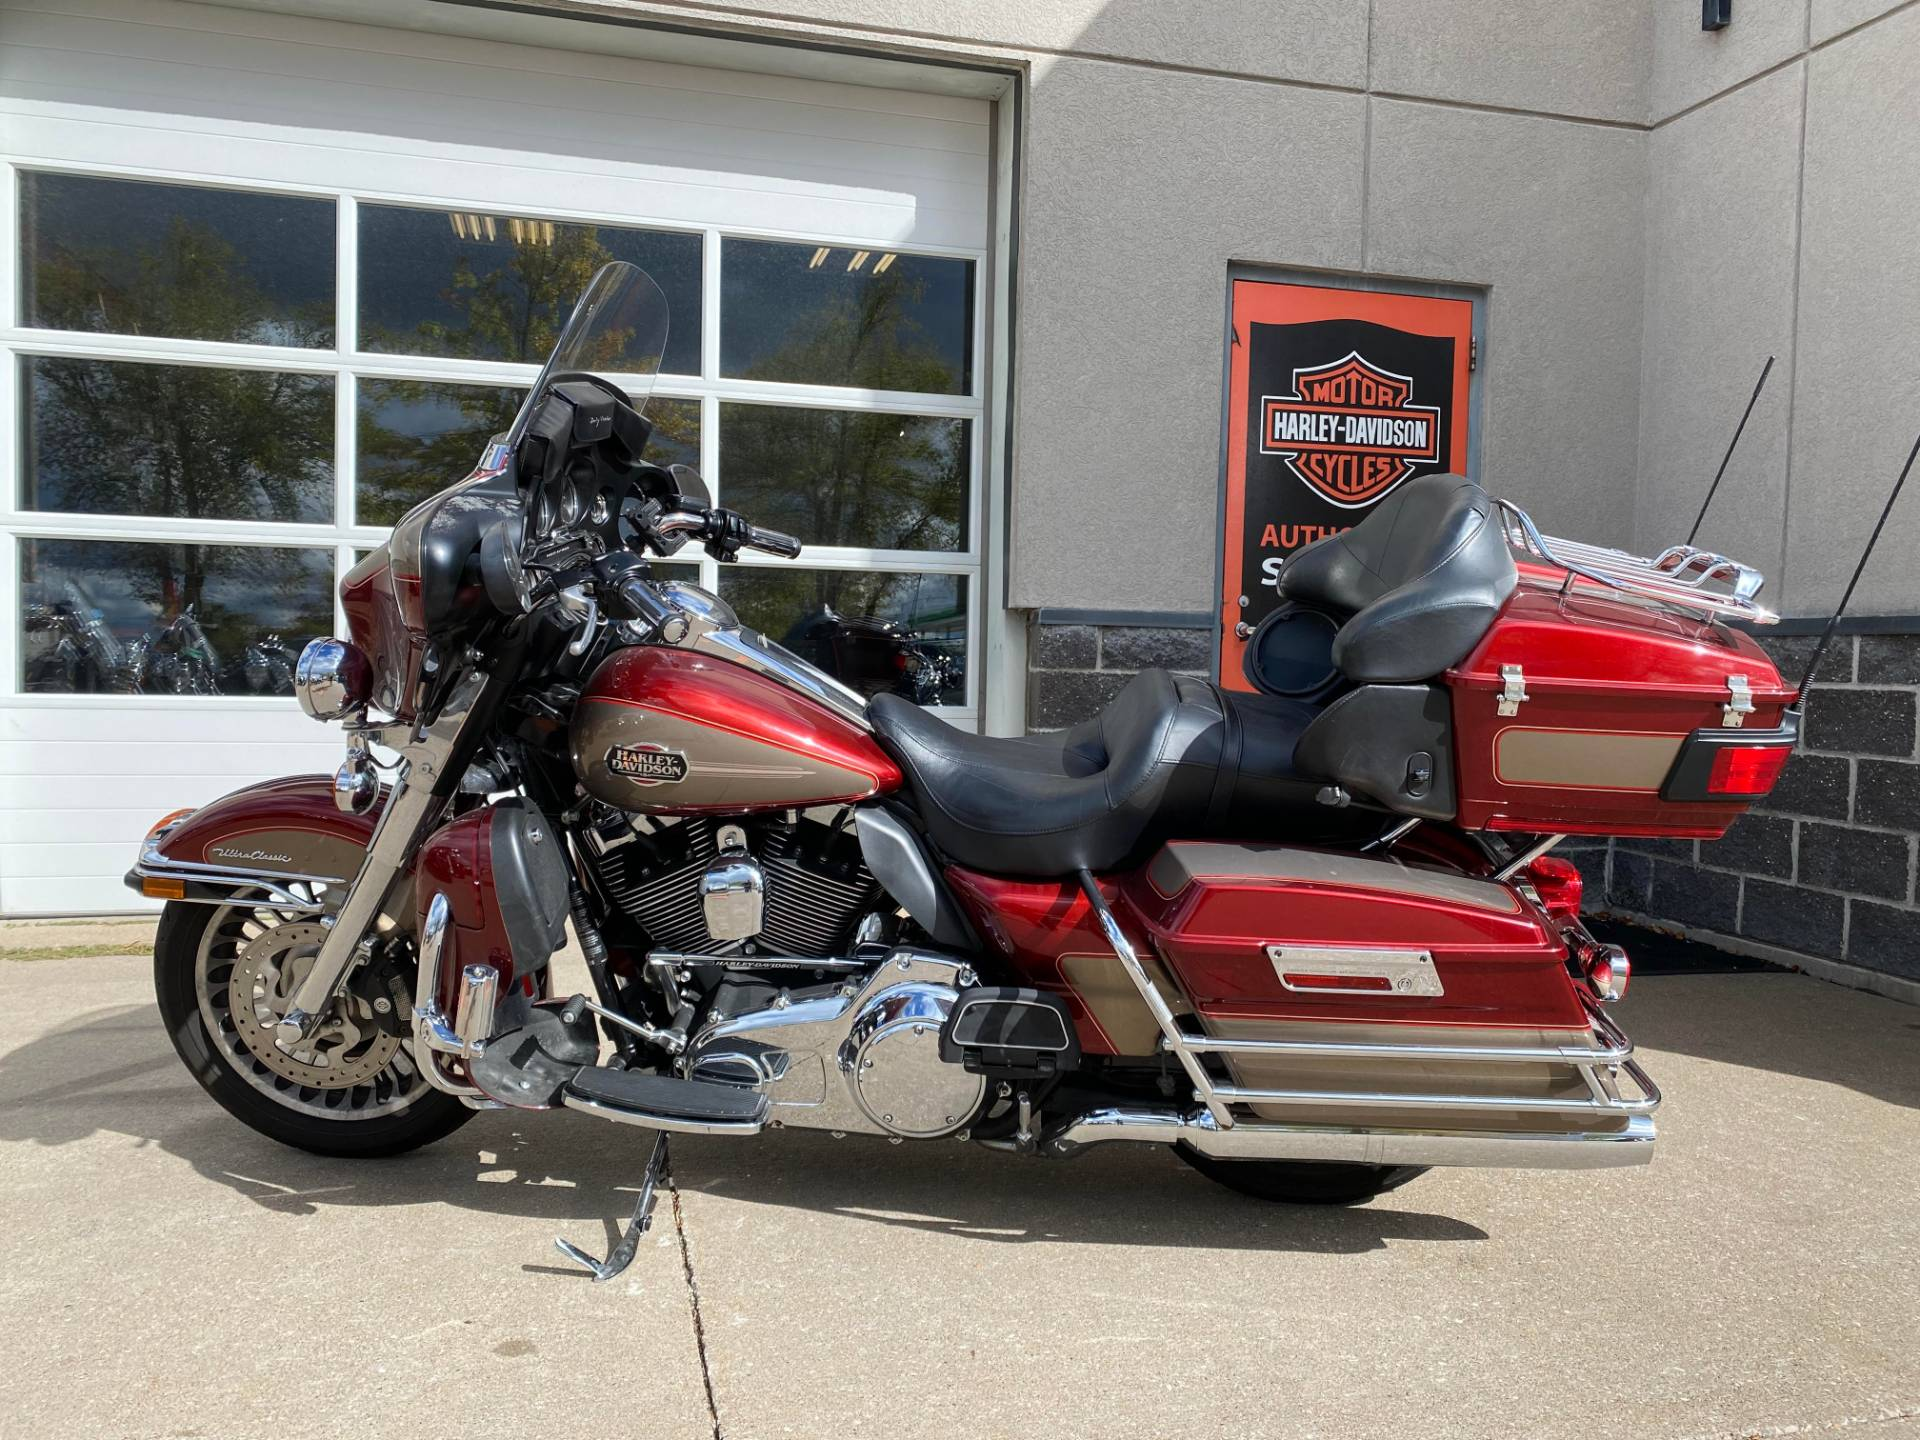 2009 Harley-Davidson ELECTRA GLIDE ULTRA CLASSIC in Davenport, Iowa - Photo 4